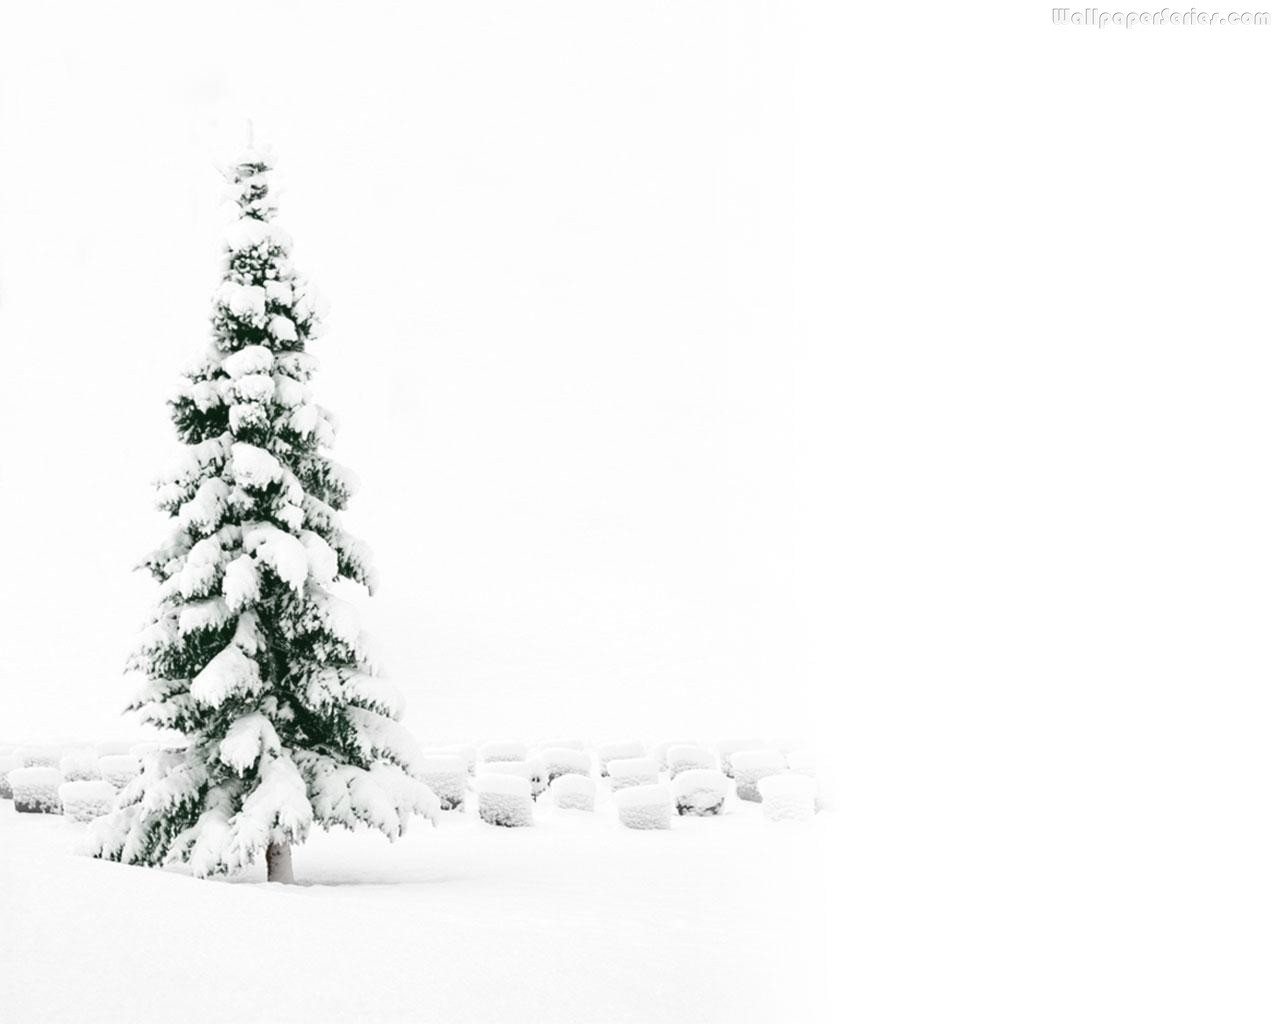 White-Christmas-Tree-Wallpaper-02 • Webcasting And Online